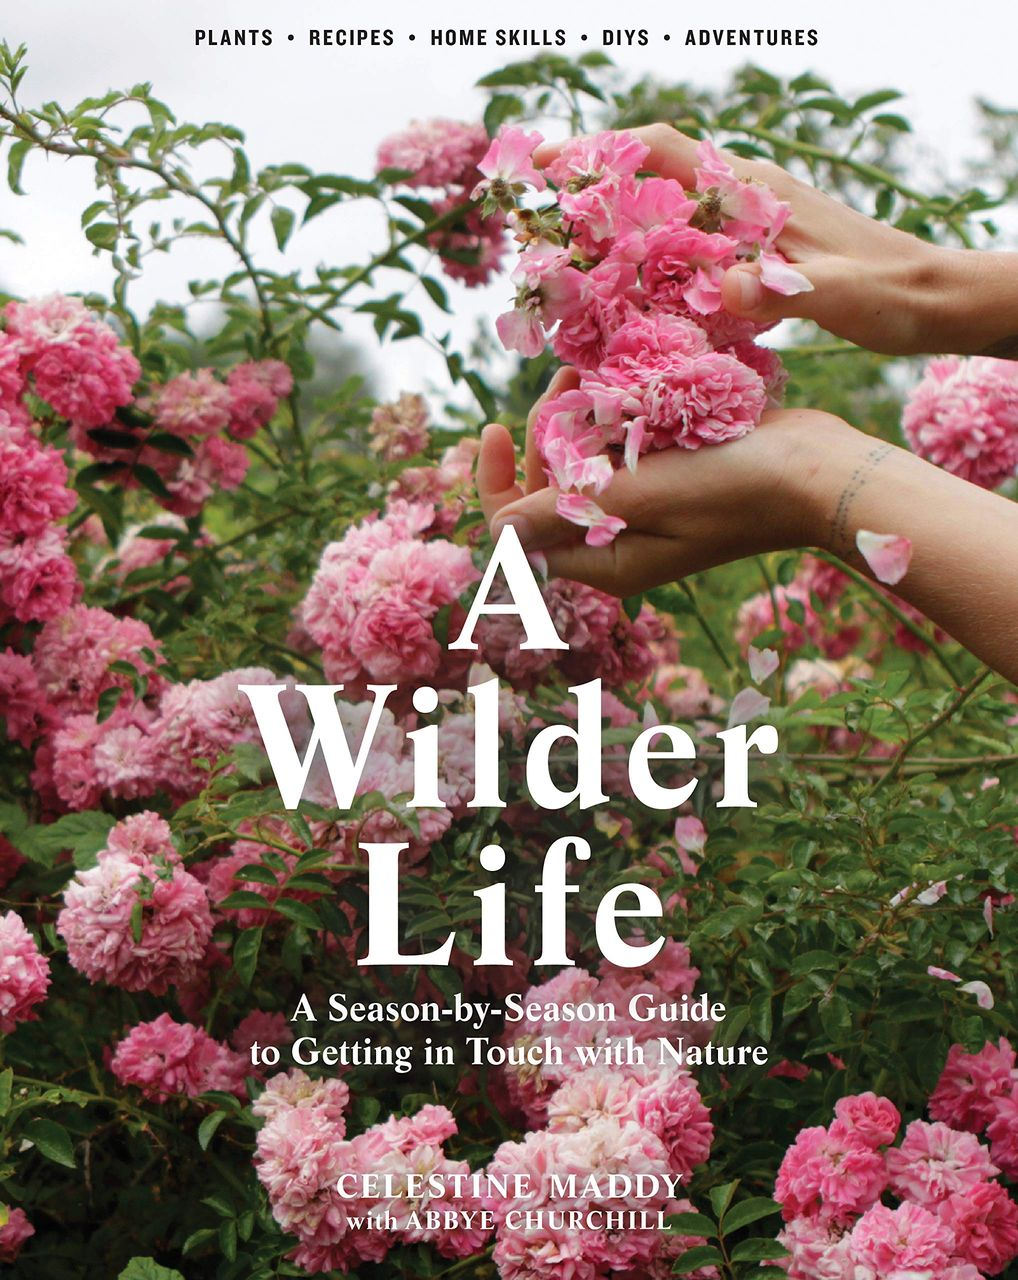 A Wilder Life by Celestine Maddy and Abbye Churchill